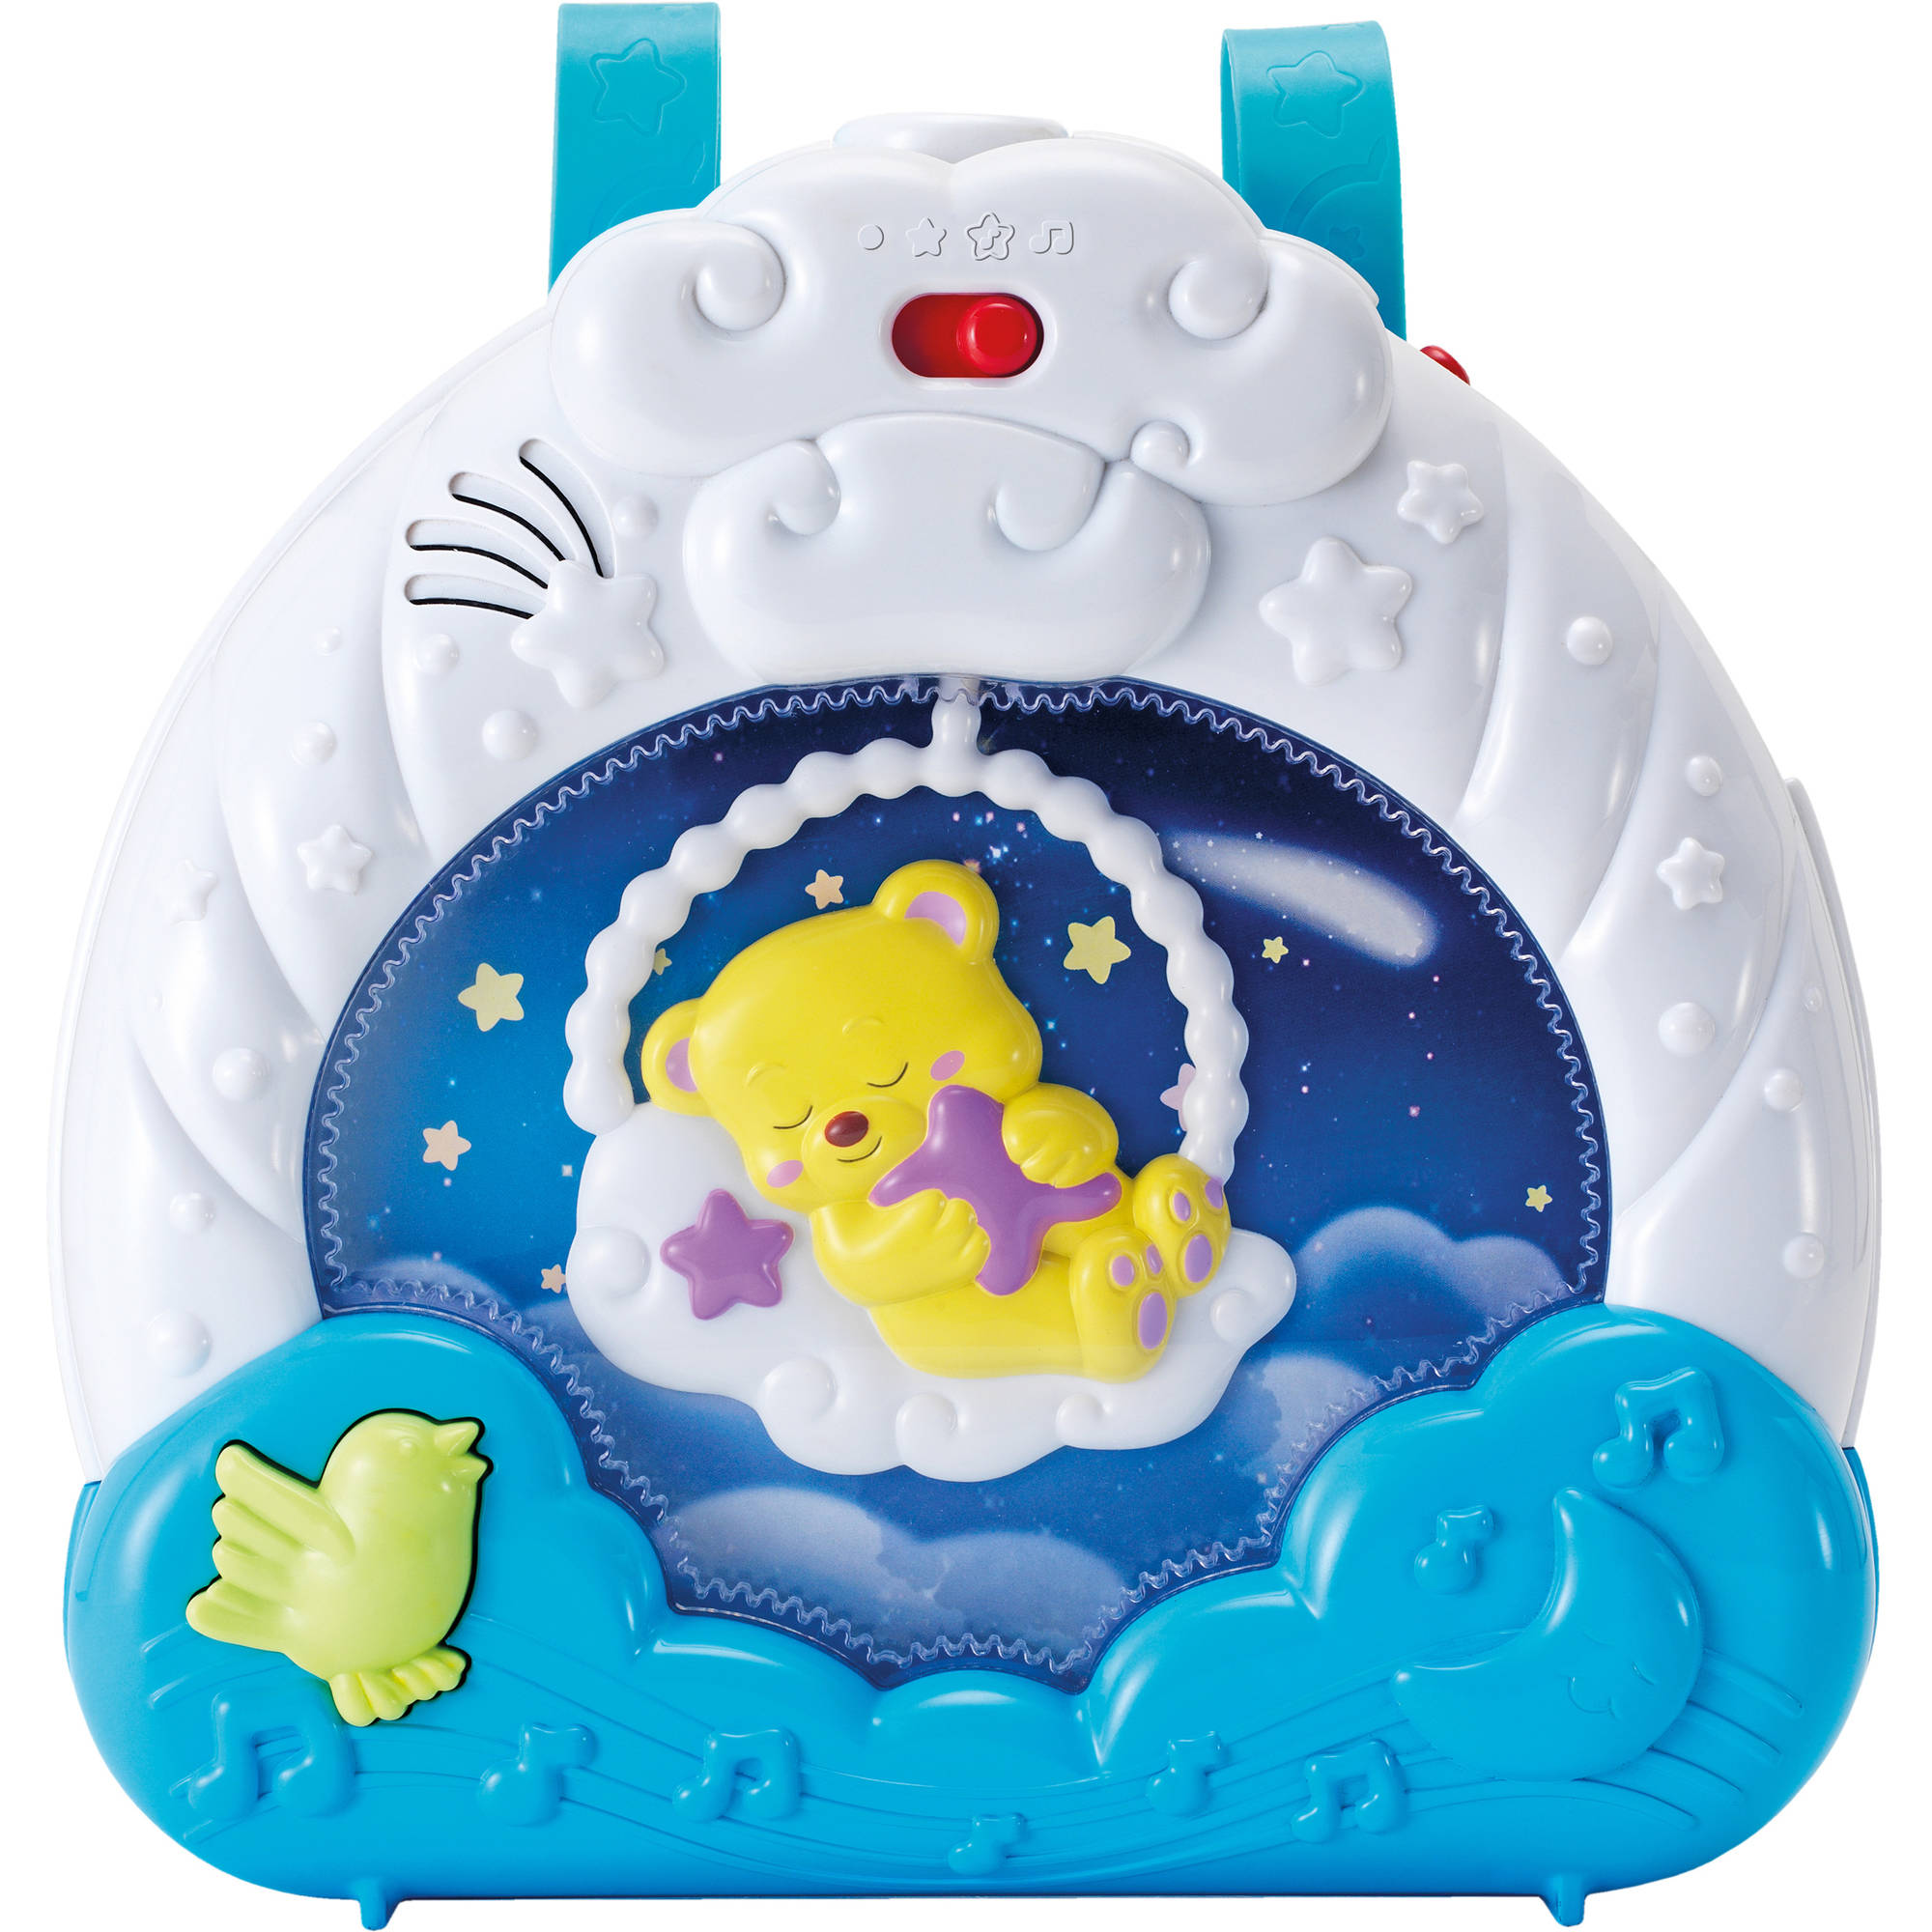 Lullaby Dreams Soothing Projector